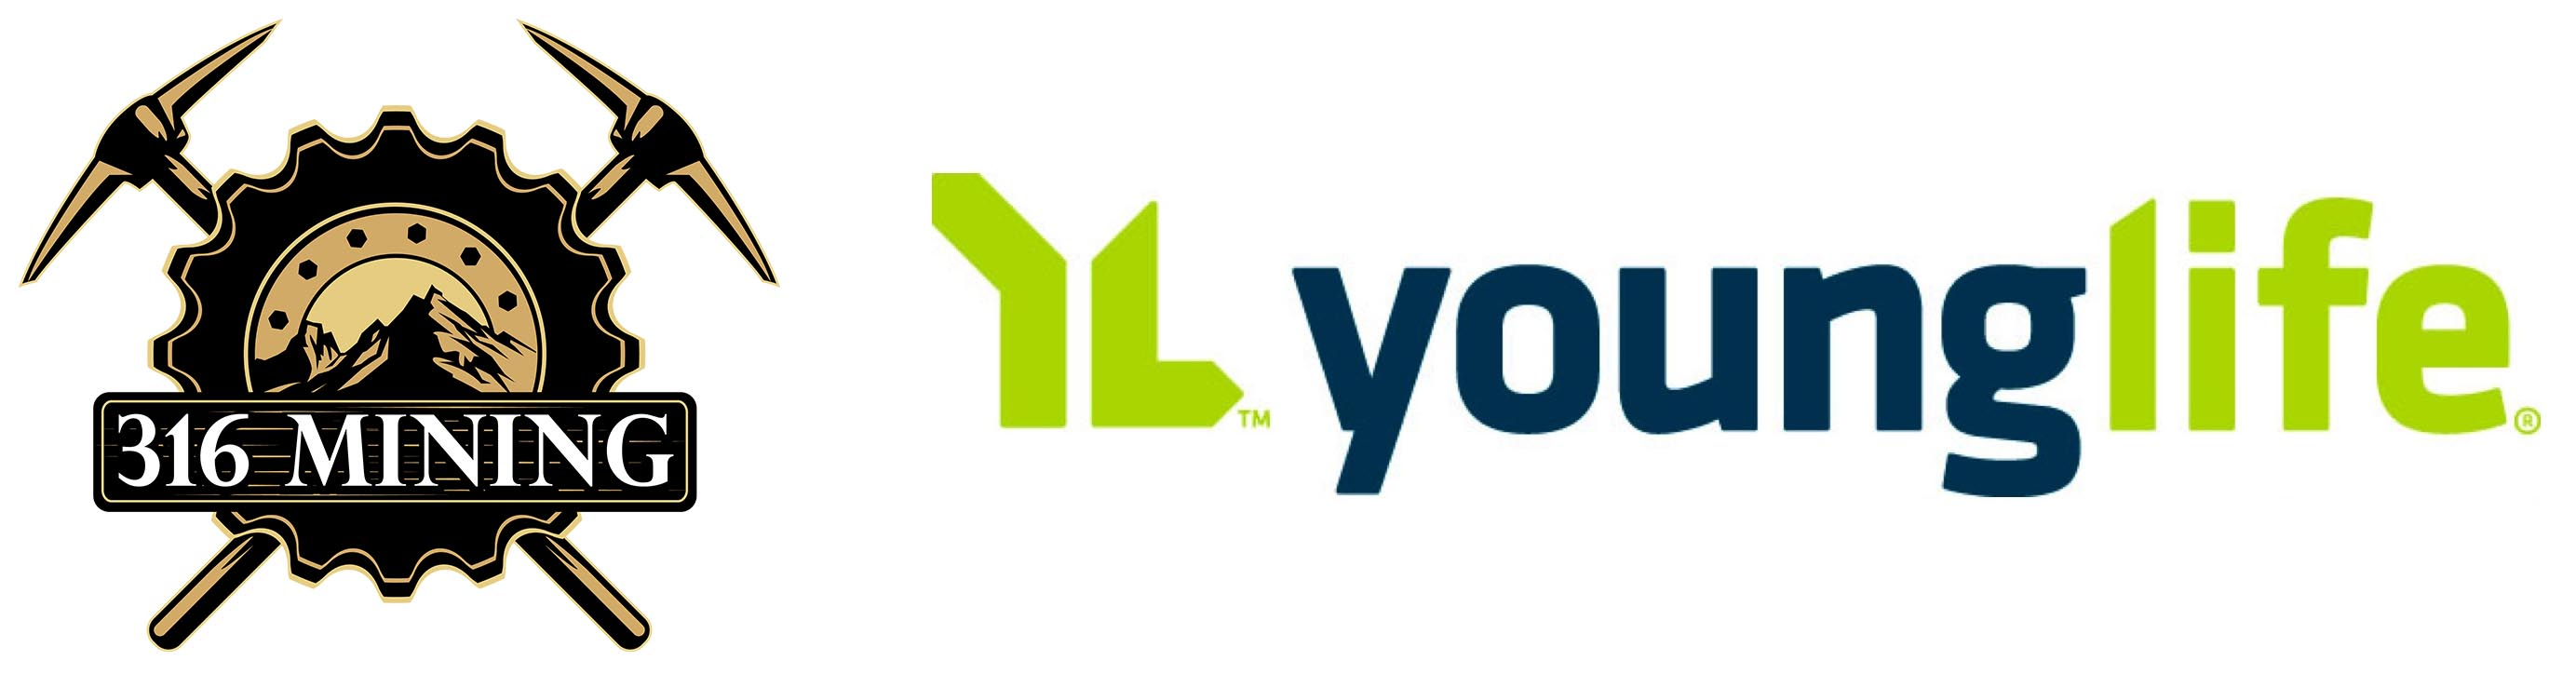 316 Mining Bible supports Young Life Ministries